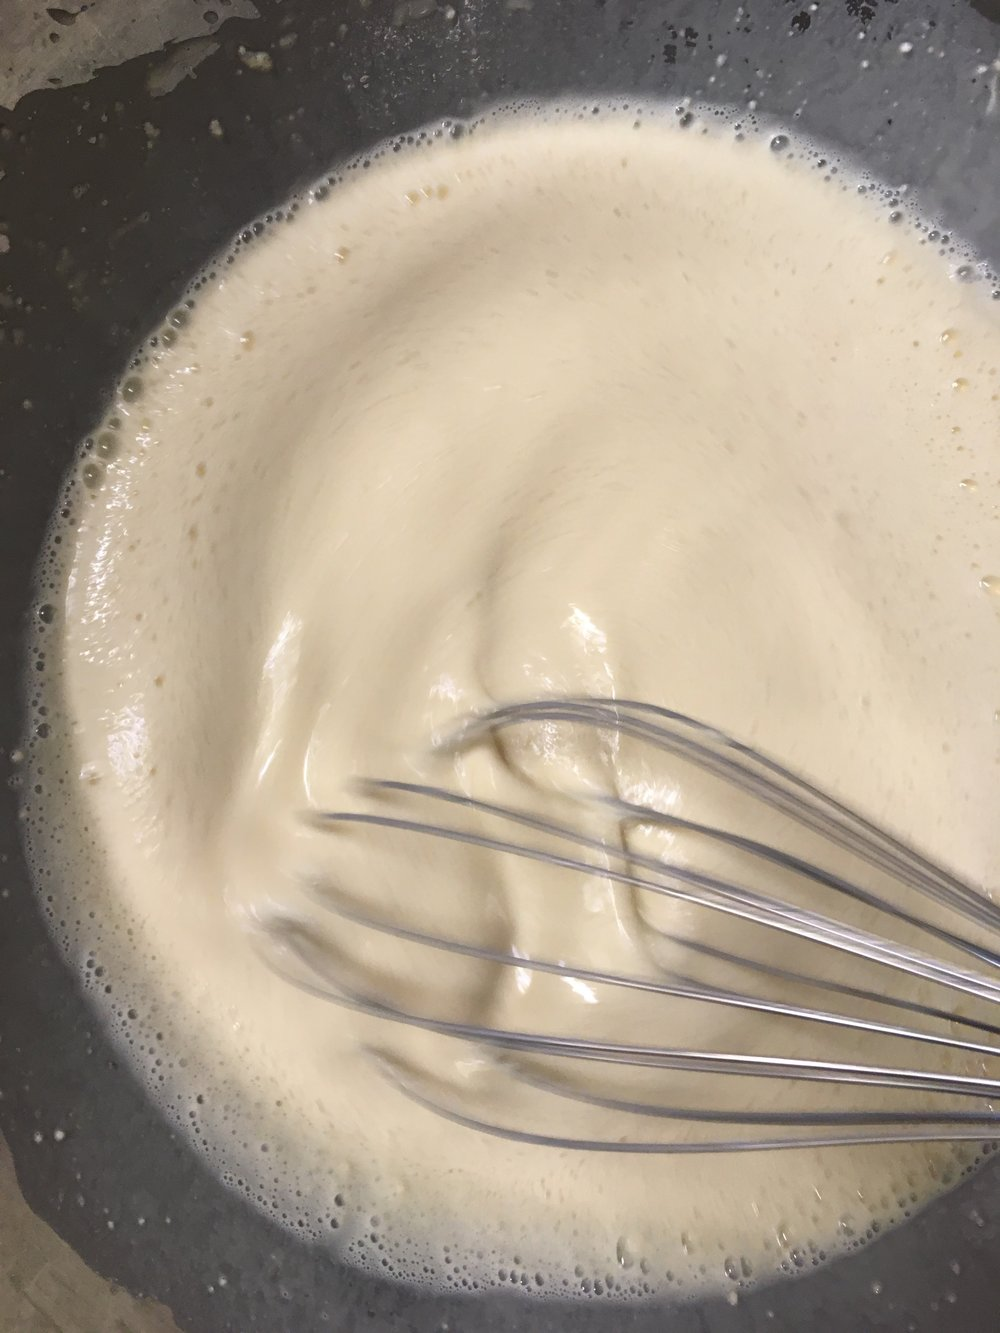 - ...and it has the consistency of thick cream or crepe batter. Runny.